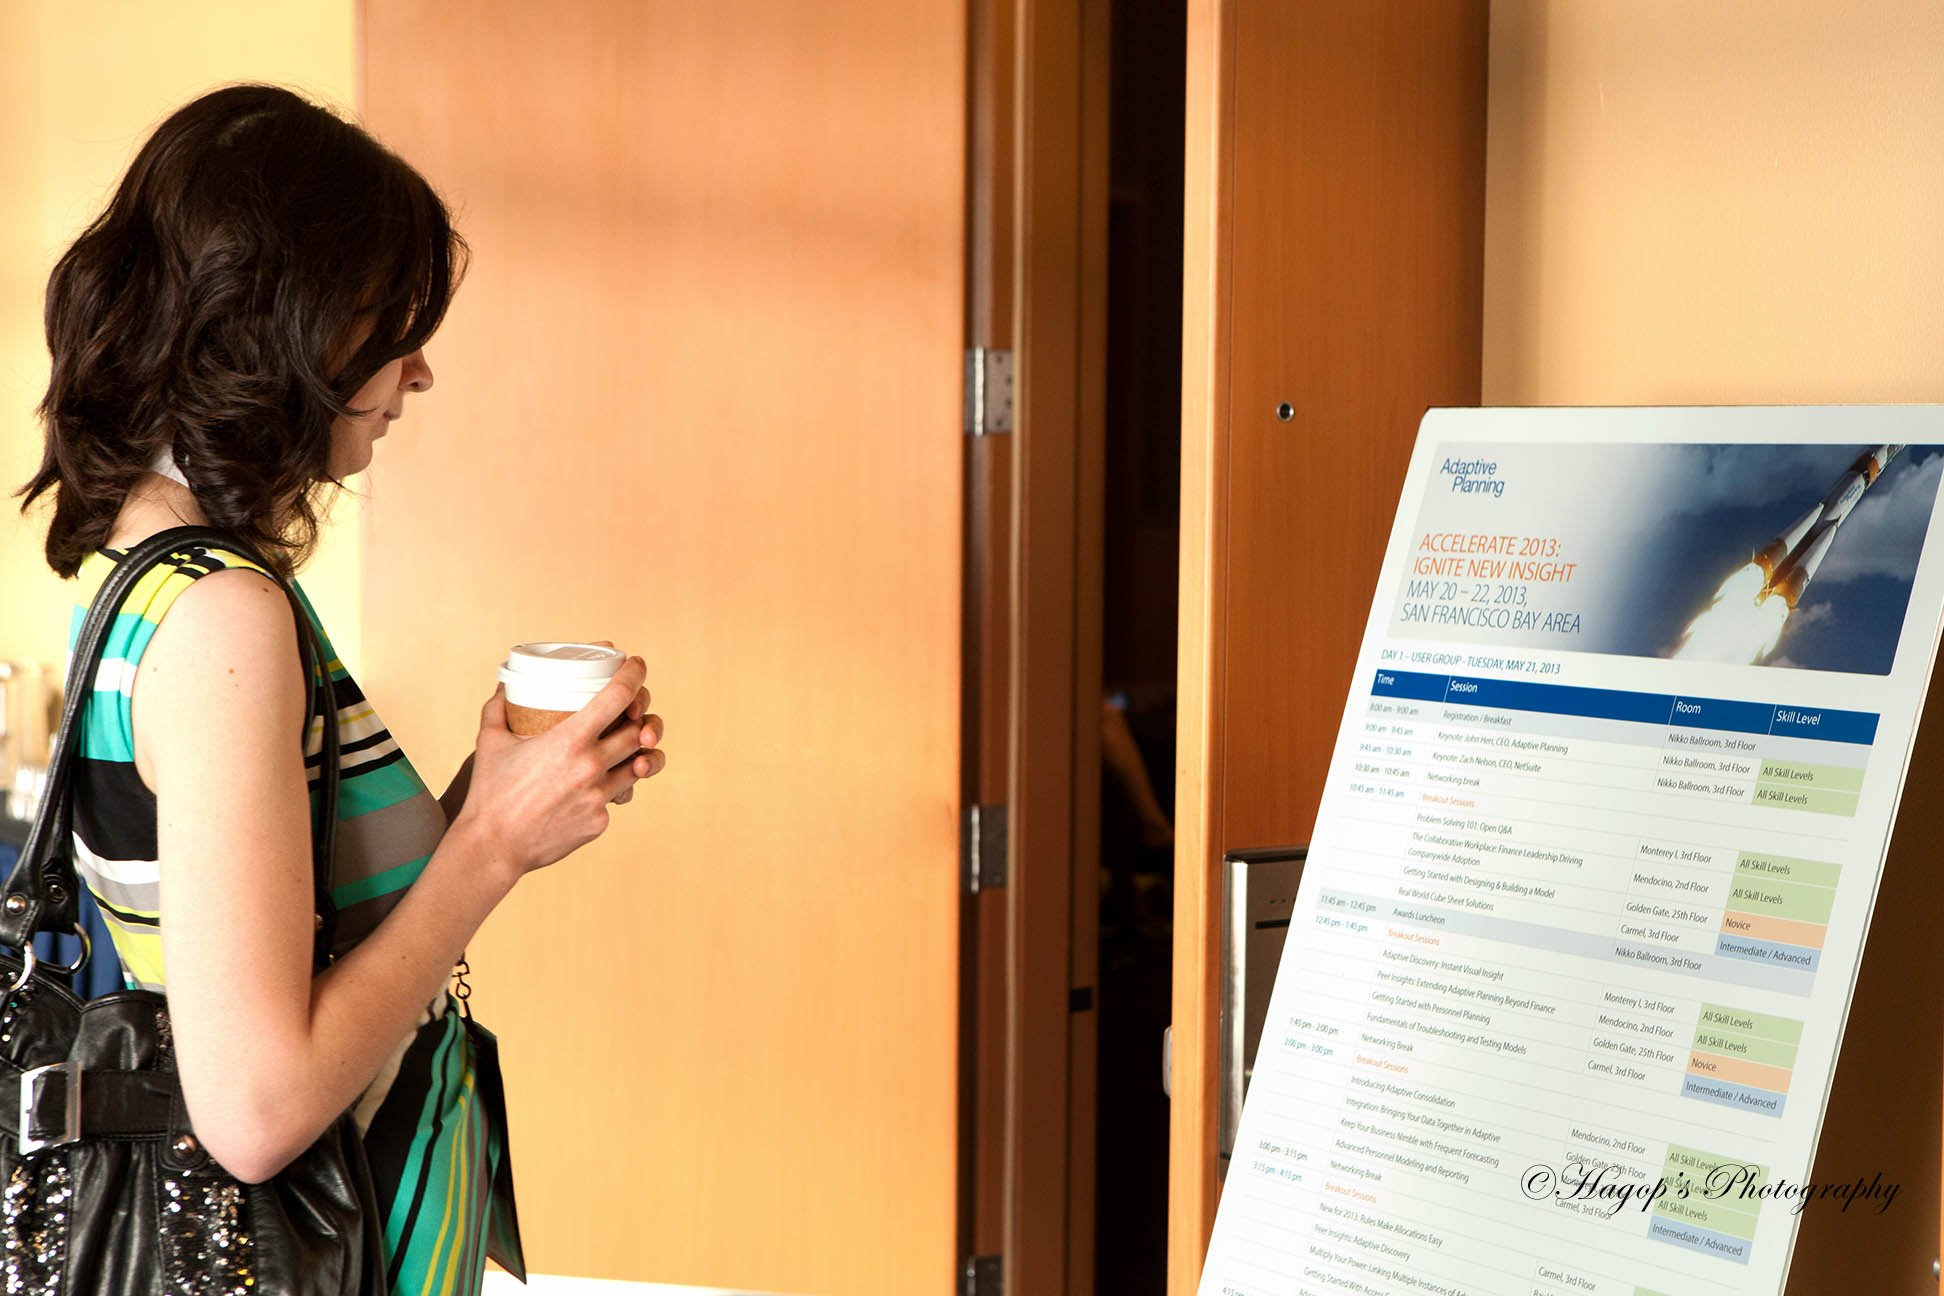 a woman looking at the conference program